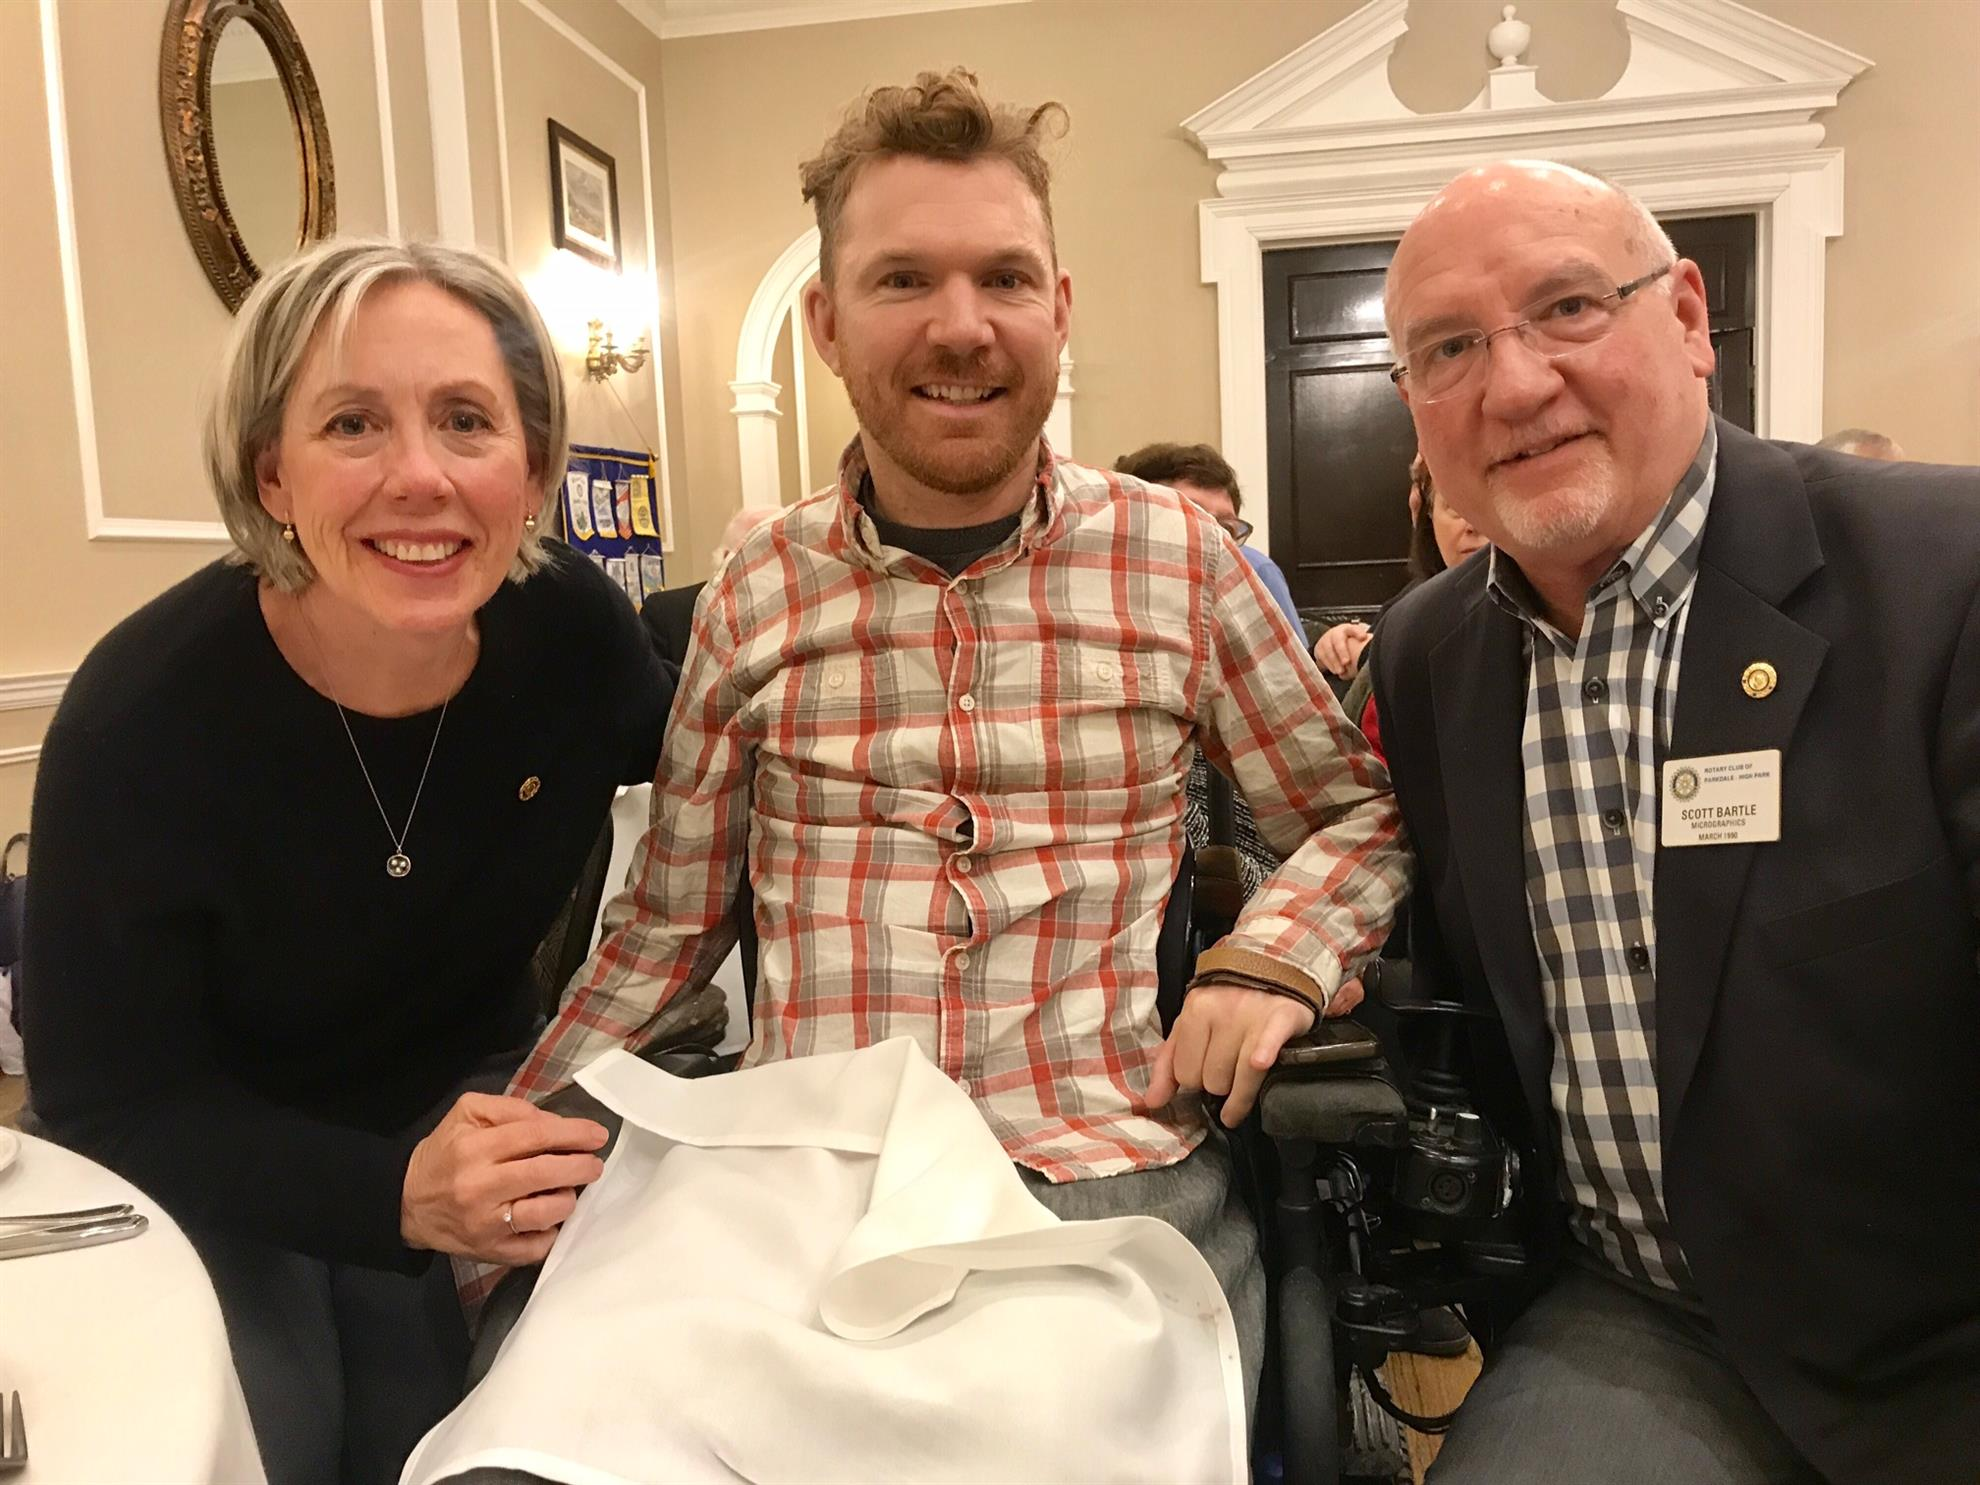 Stories | Rotary Club of Parkdale-High Park Humber